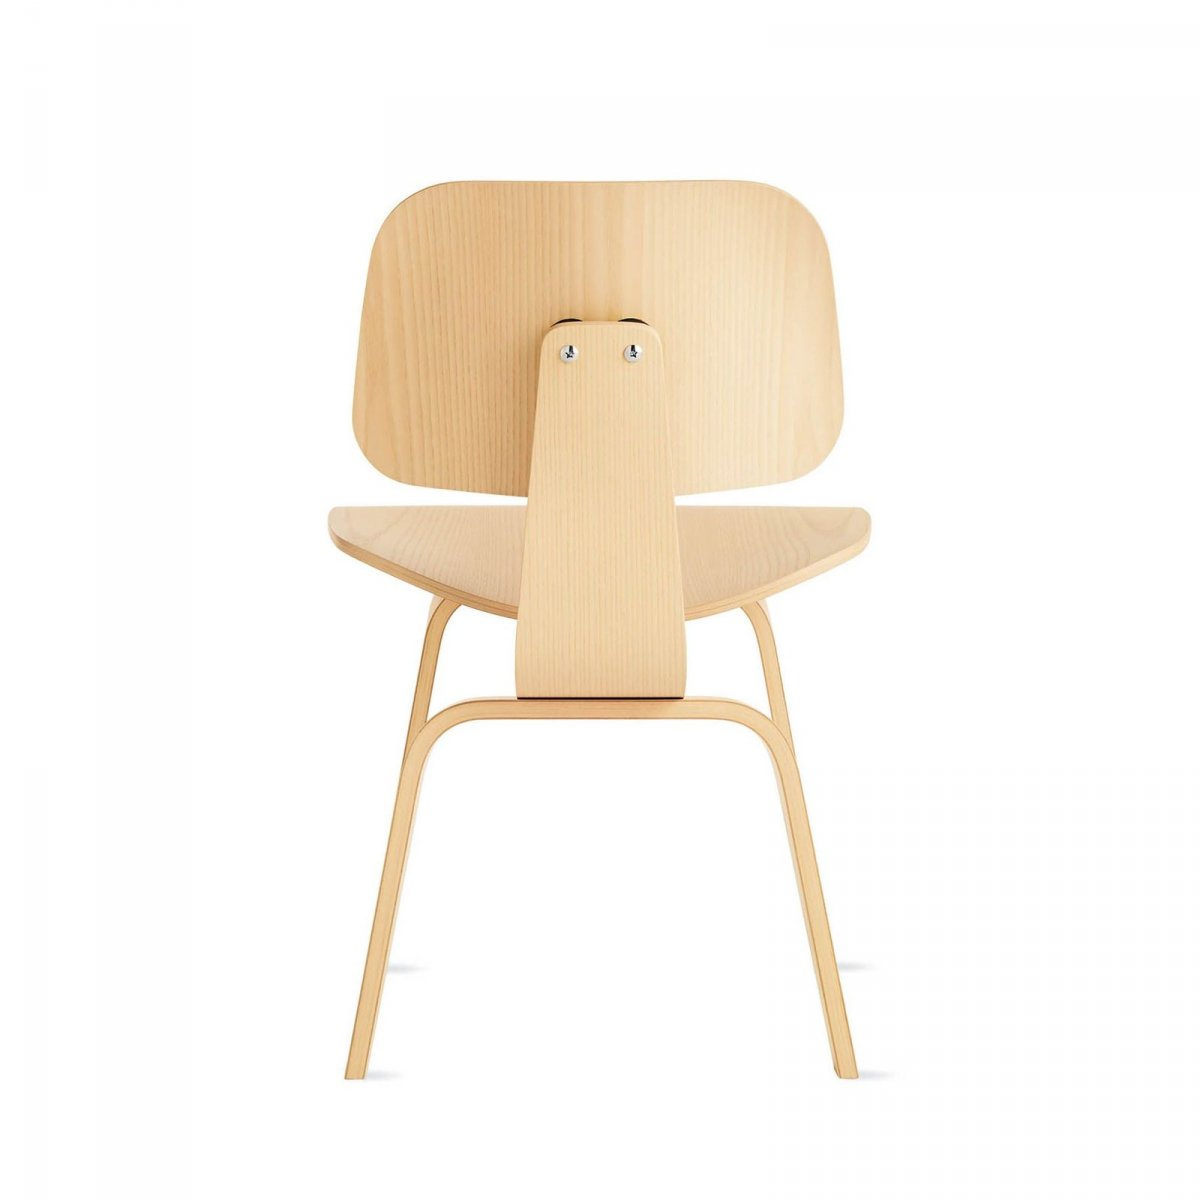 Eames Molded Plywood Dining Chair Wood Base by Charles  : eames molded plywood dining chair wood base 19 25745 from upinteriors.com size 1200 x 1200 jpeg 53kB